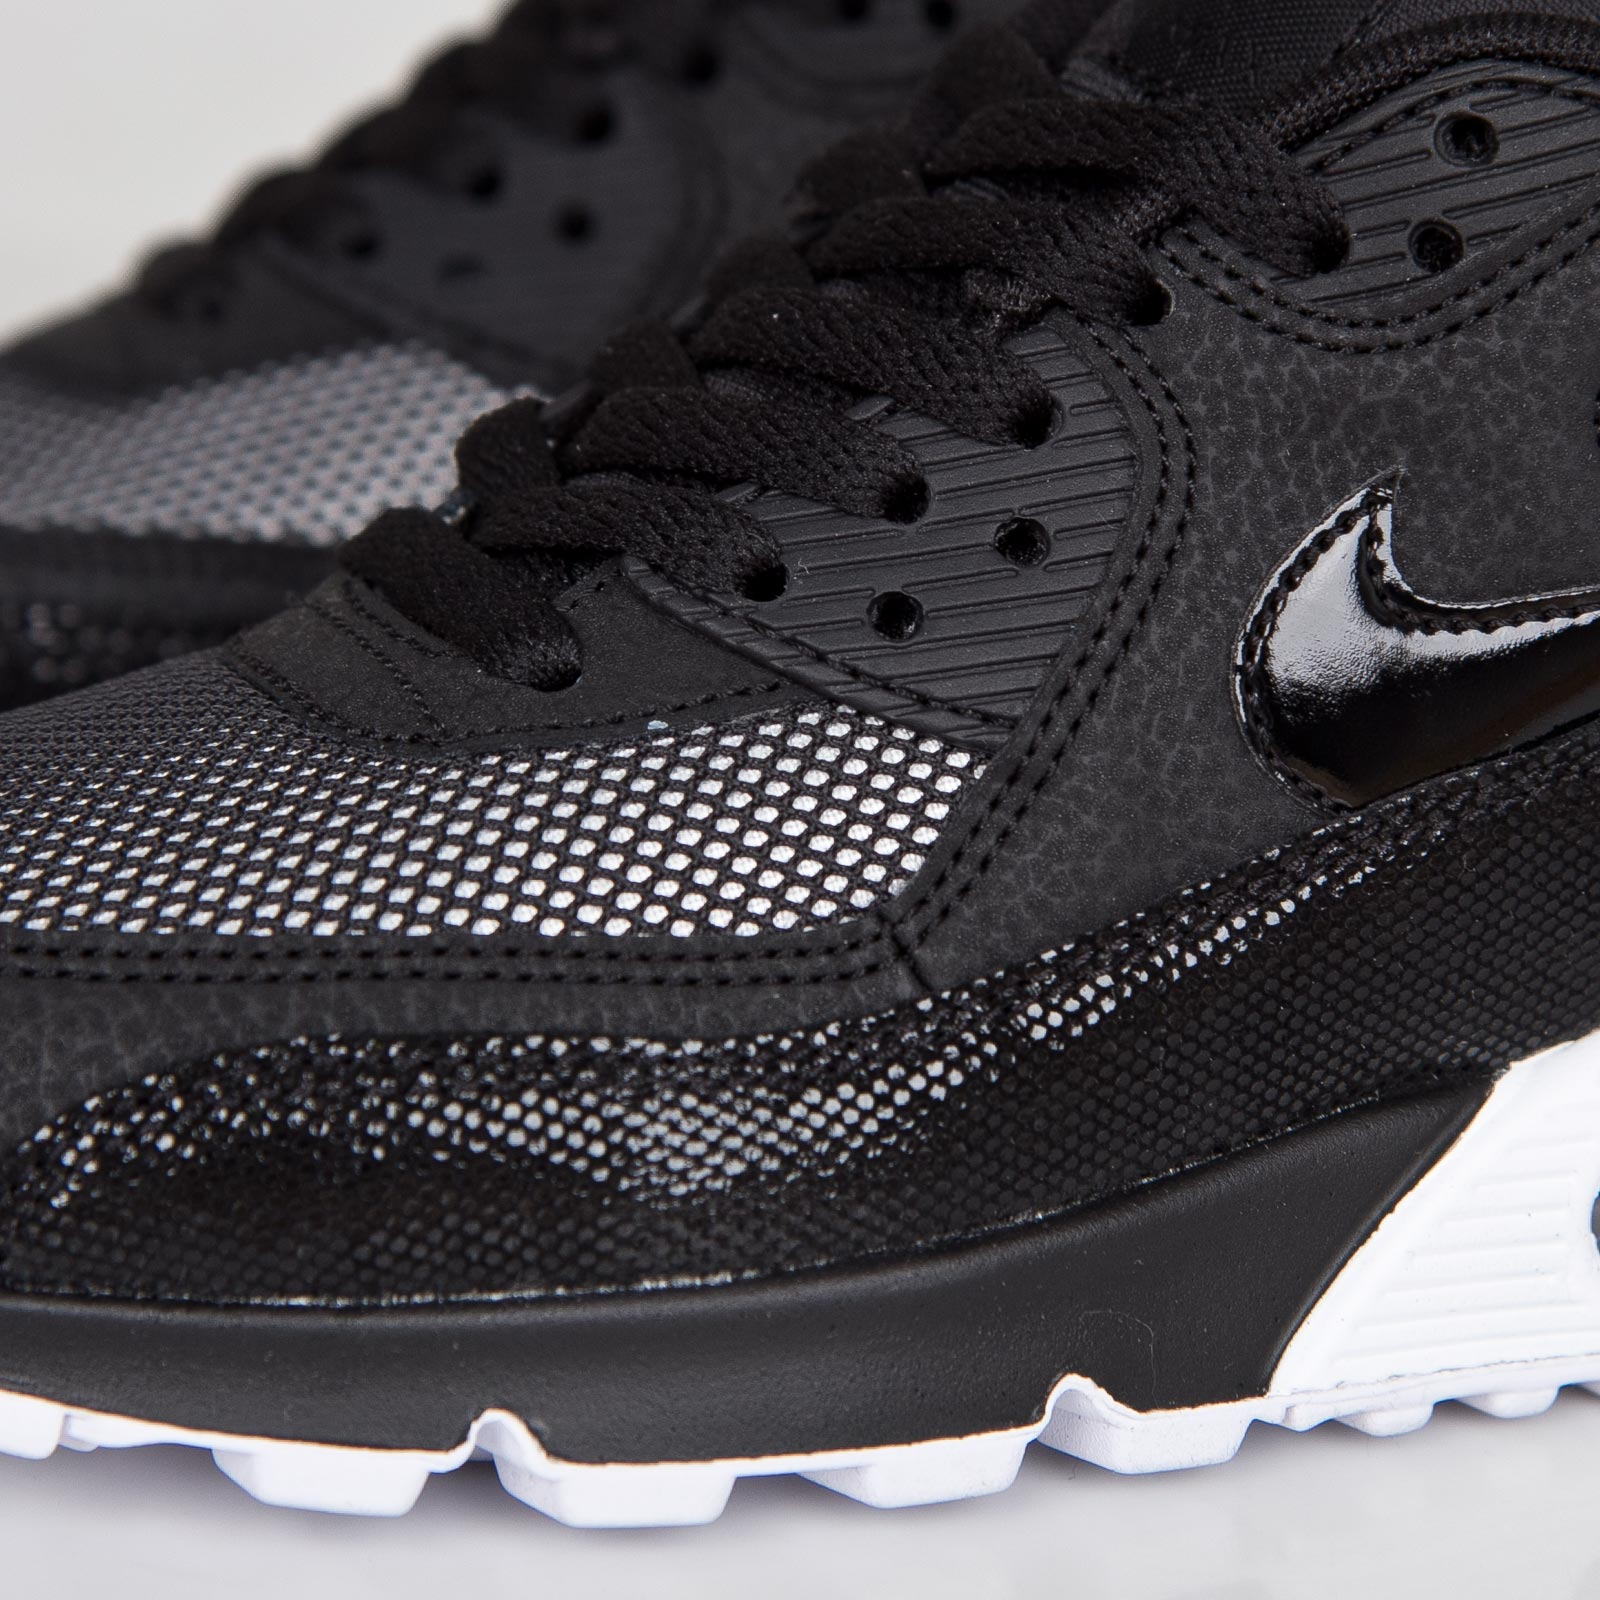 new style bcebe 8e6a5 Nike Wmns Air Max 90 Premium - 443817-005 - Sneakersnstuff   sneakers    streetwear online since 1999